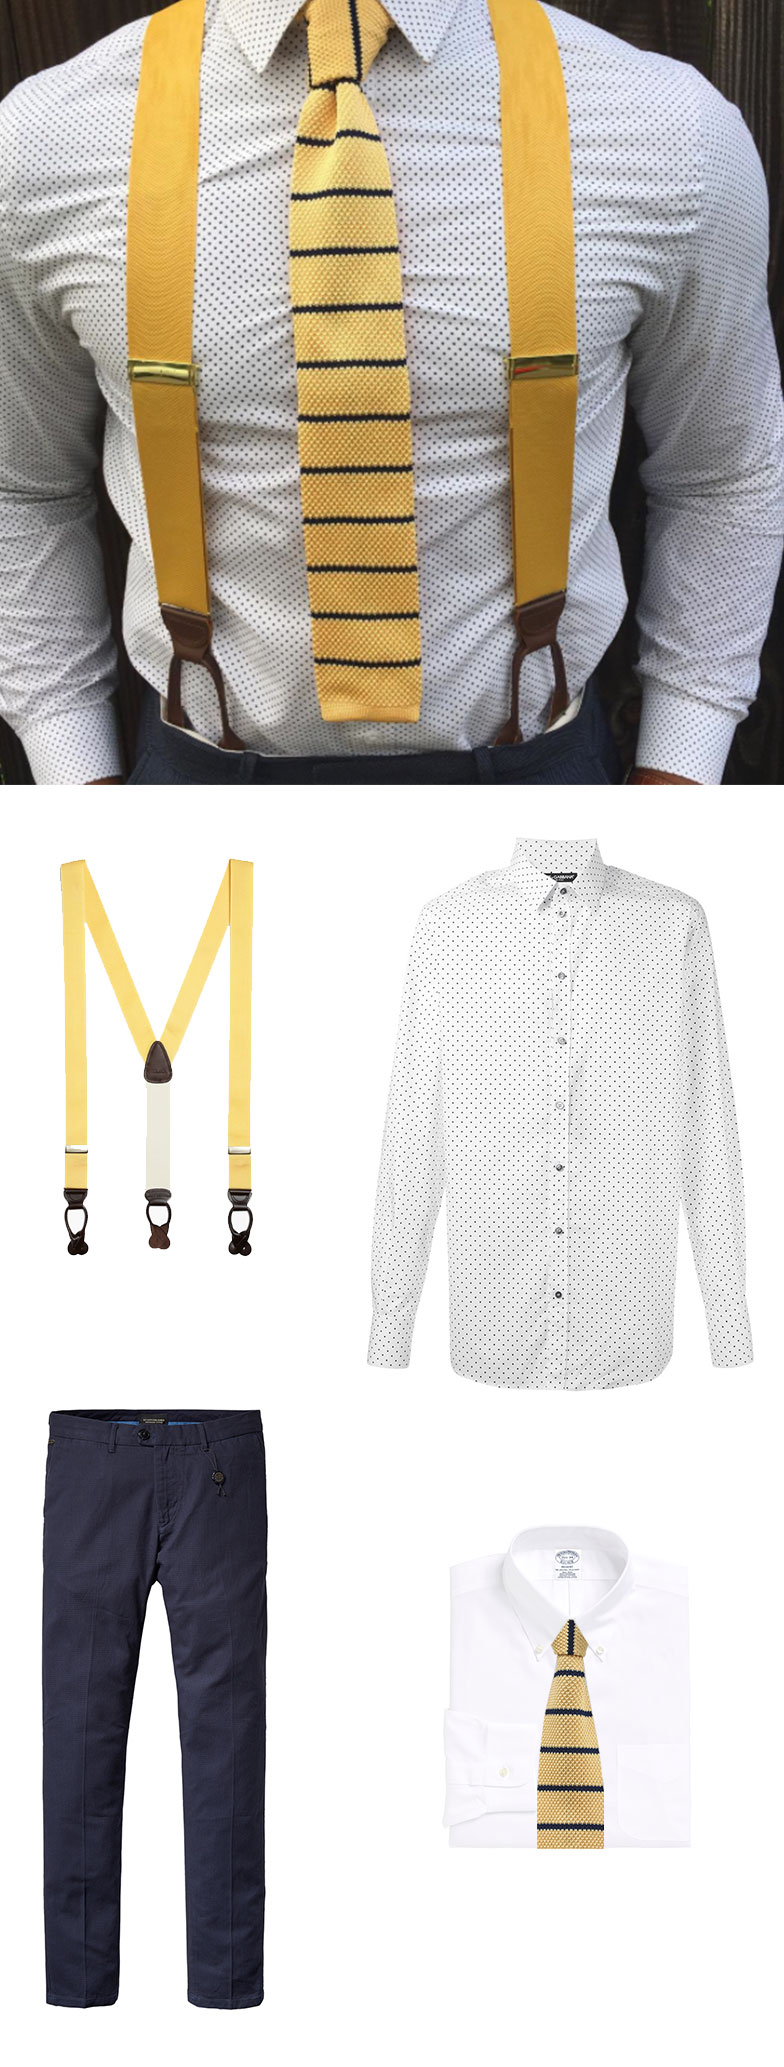 Yellow-Knit-Tie-and-Suspenders